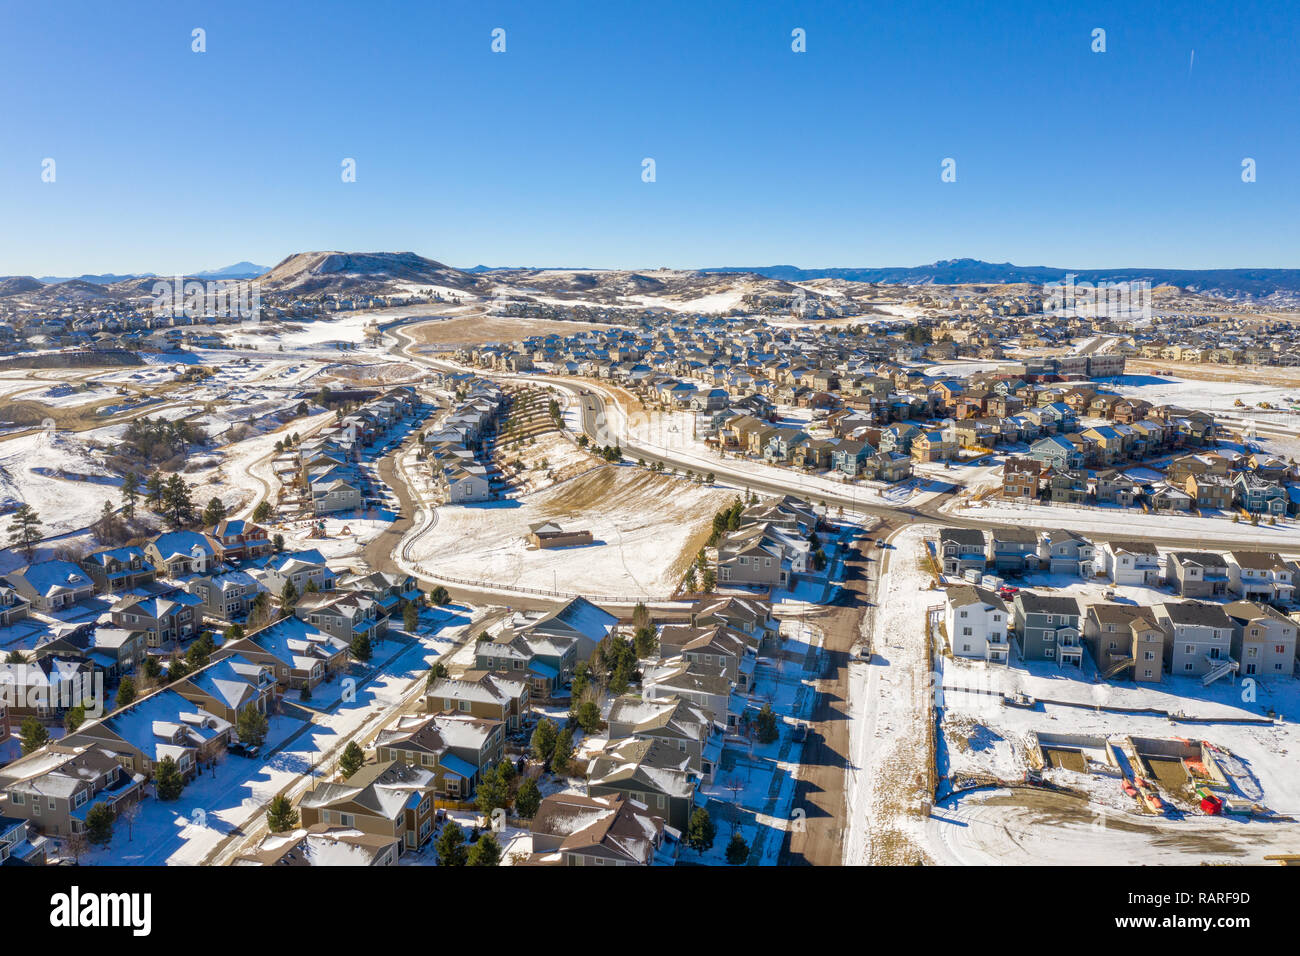 A great photo illustrating Denver urban sprawl and the Colorado housing boom as it continues even in the winter snow - Stock Image